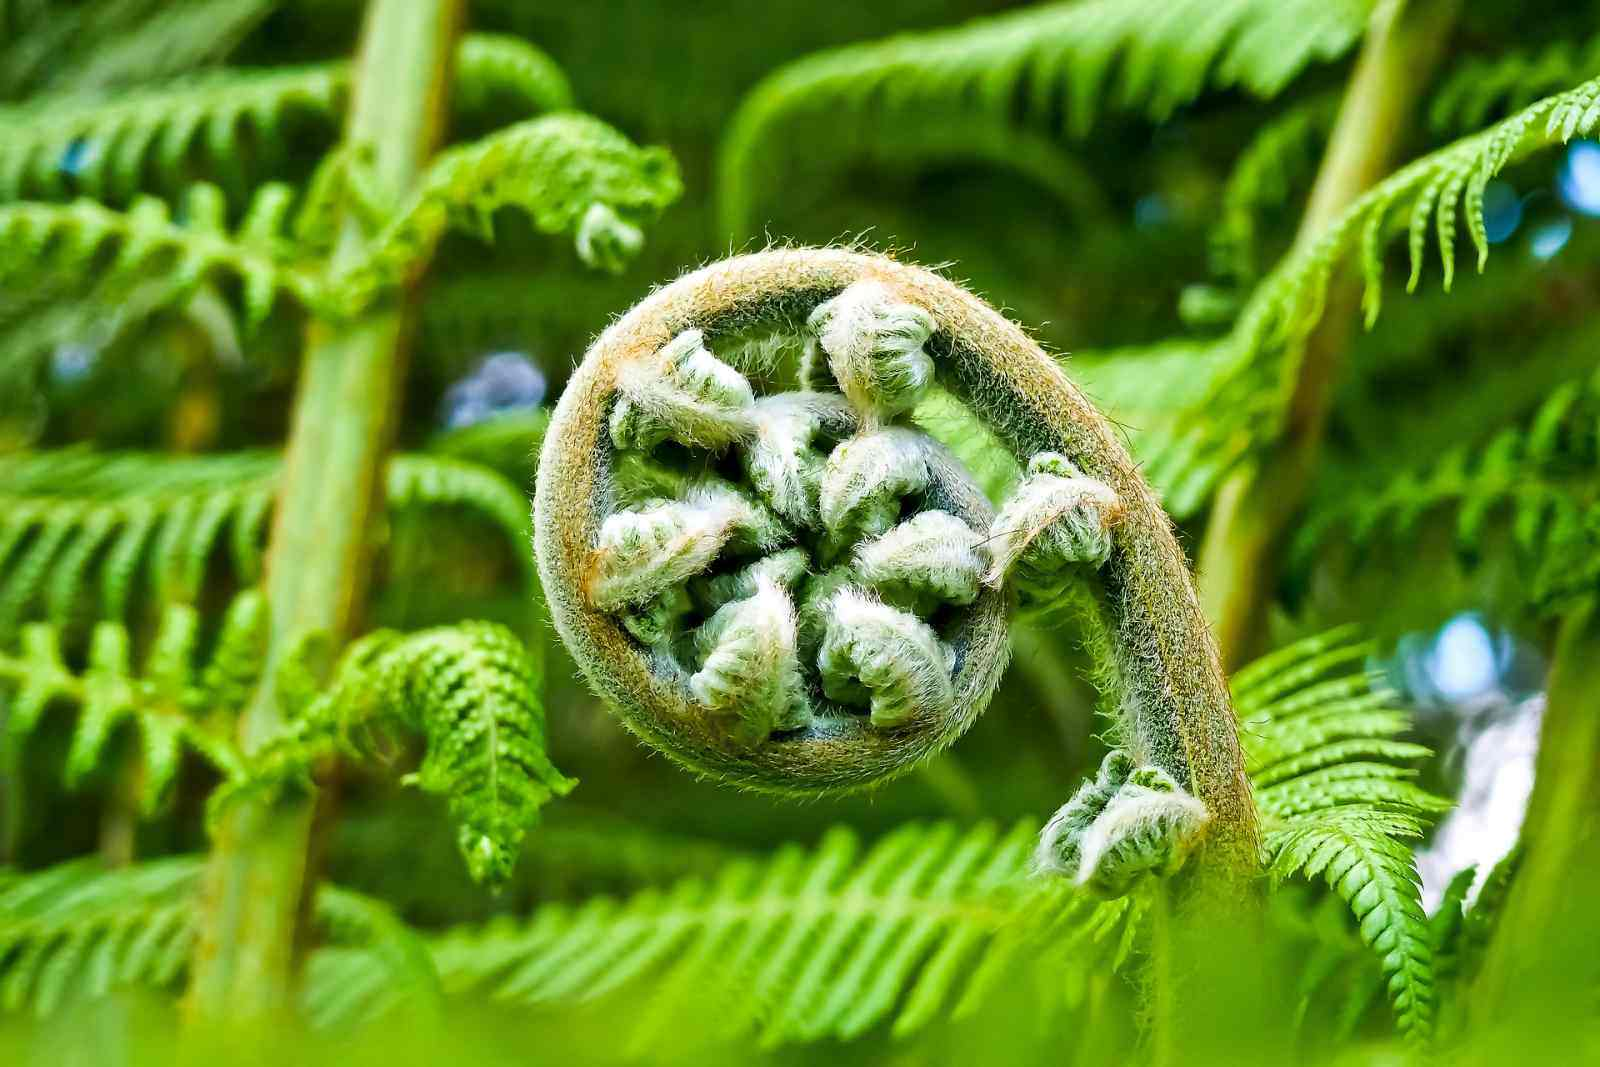 Unfurling new fern frond or koru. Image by Michael Gaida from Pixabay